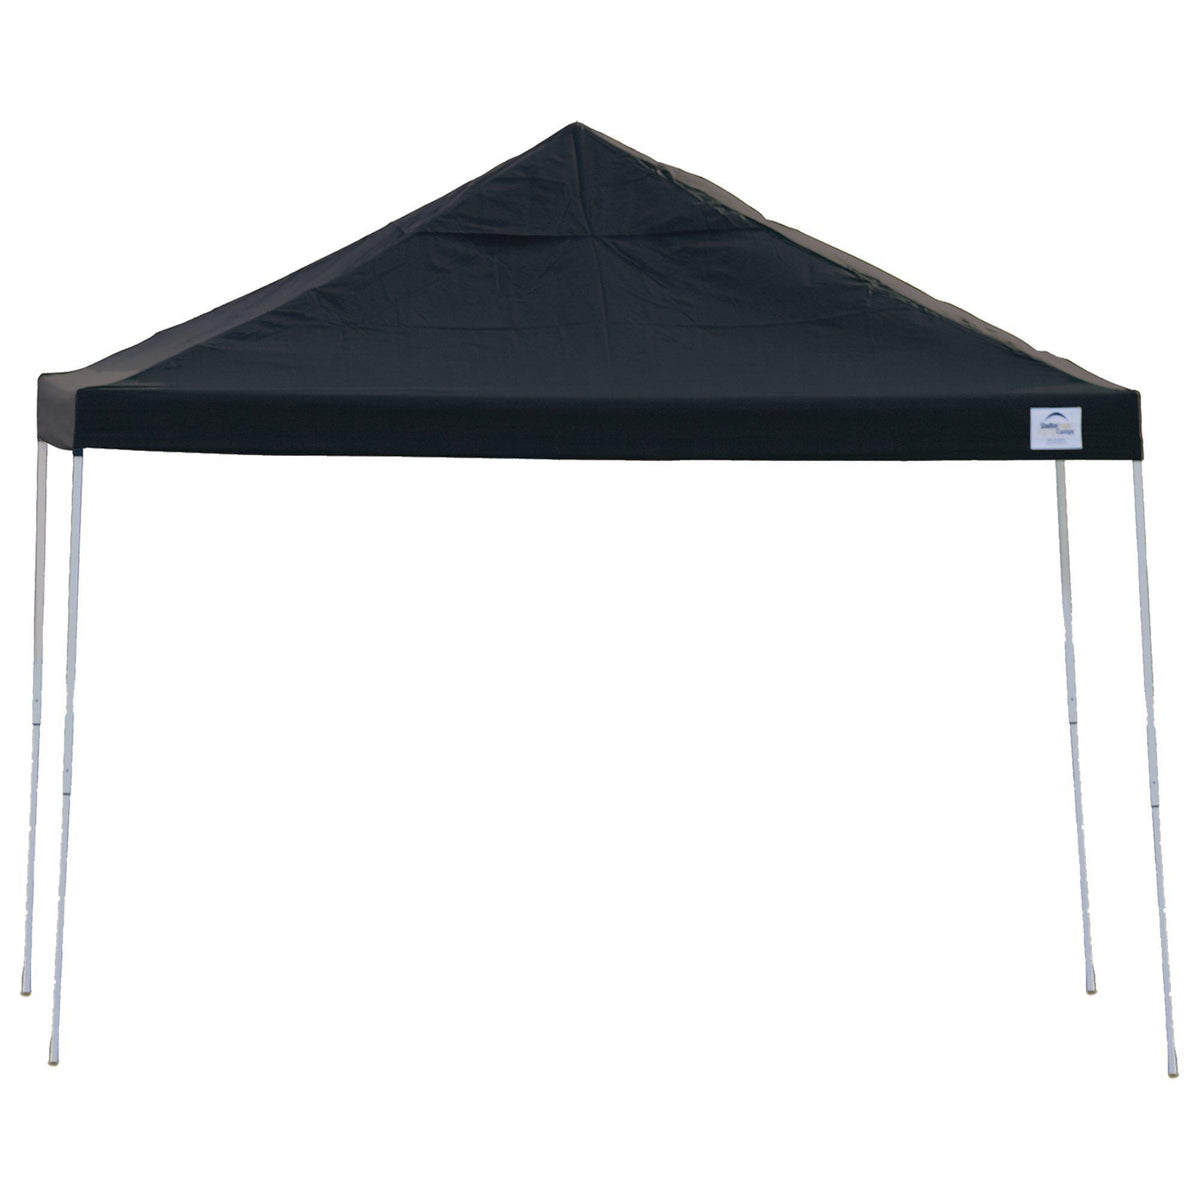 ShelterLogic Pro Series Straight Leg Pop-Up Canopy with Roller Bag